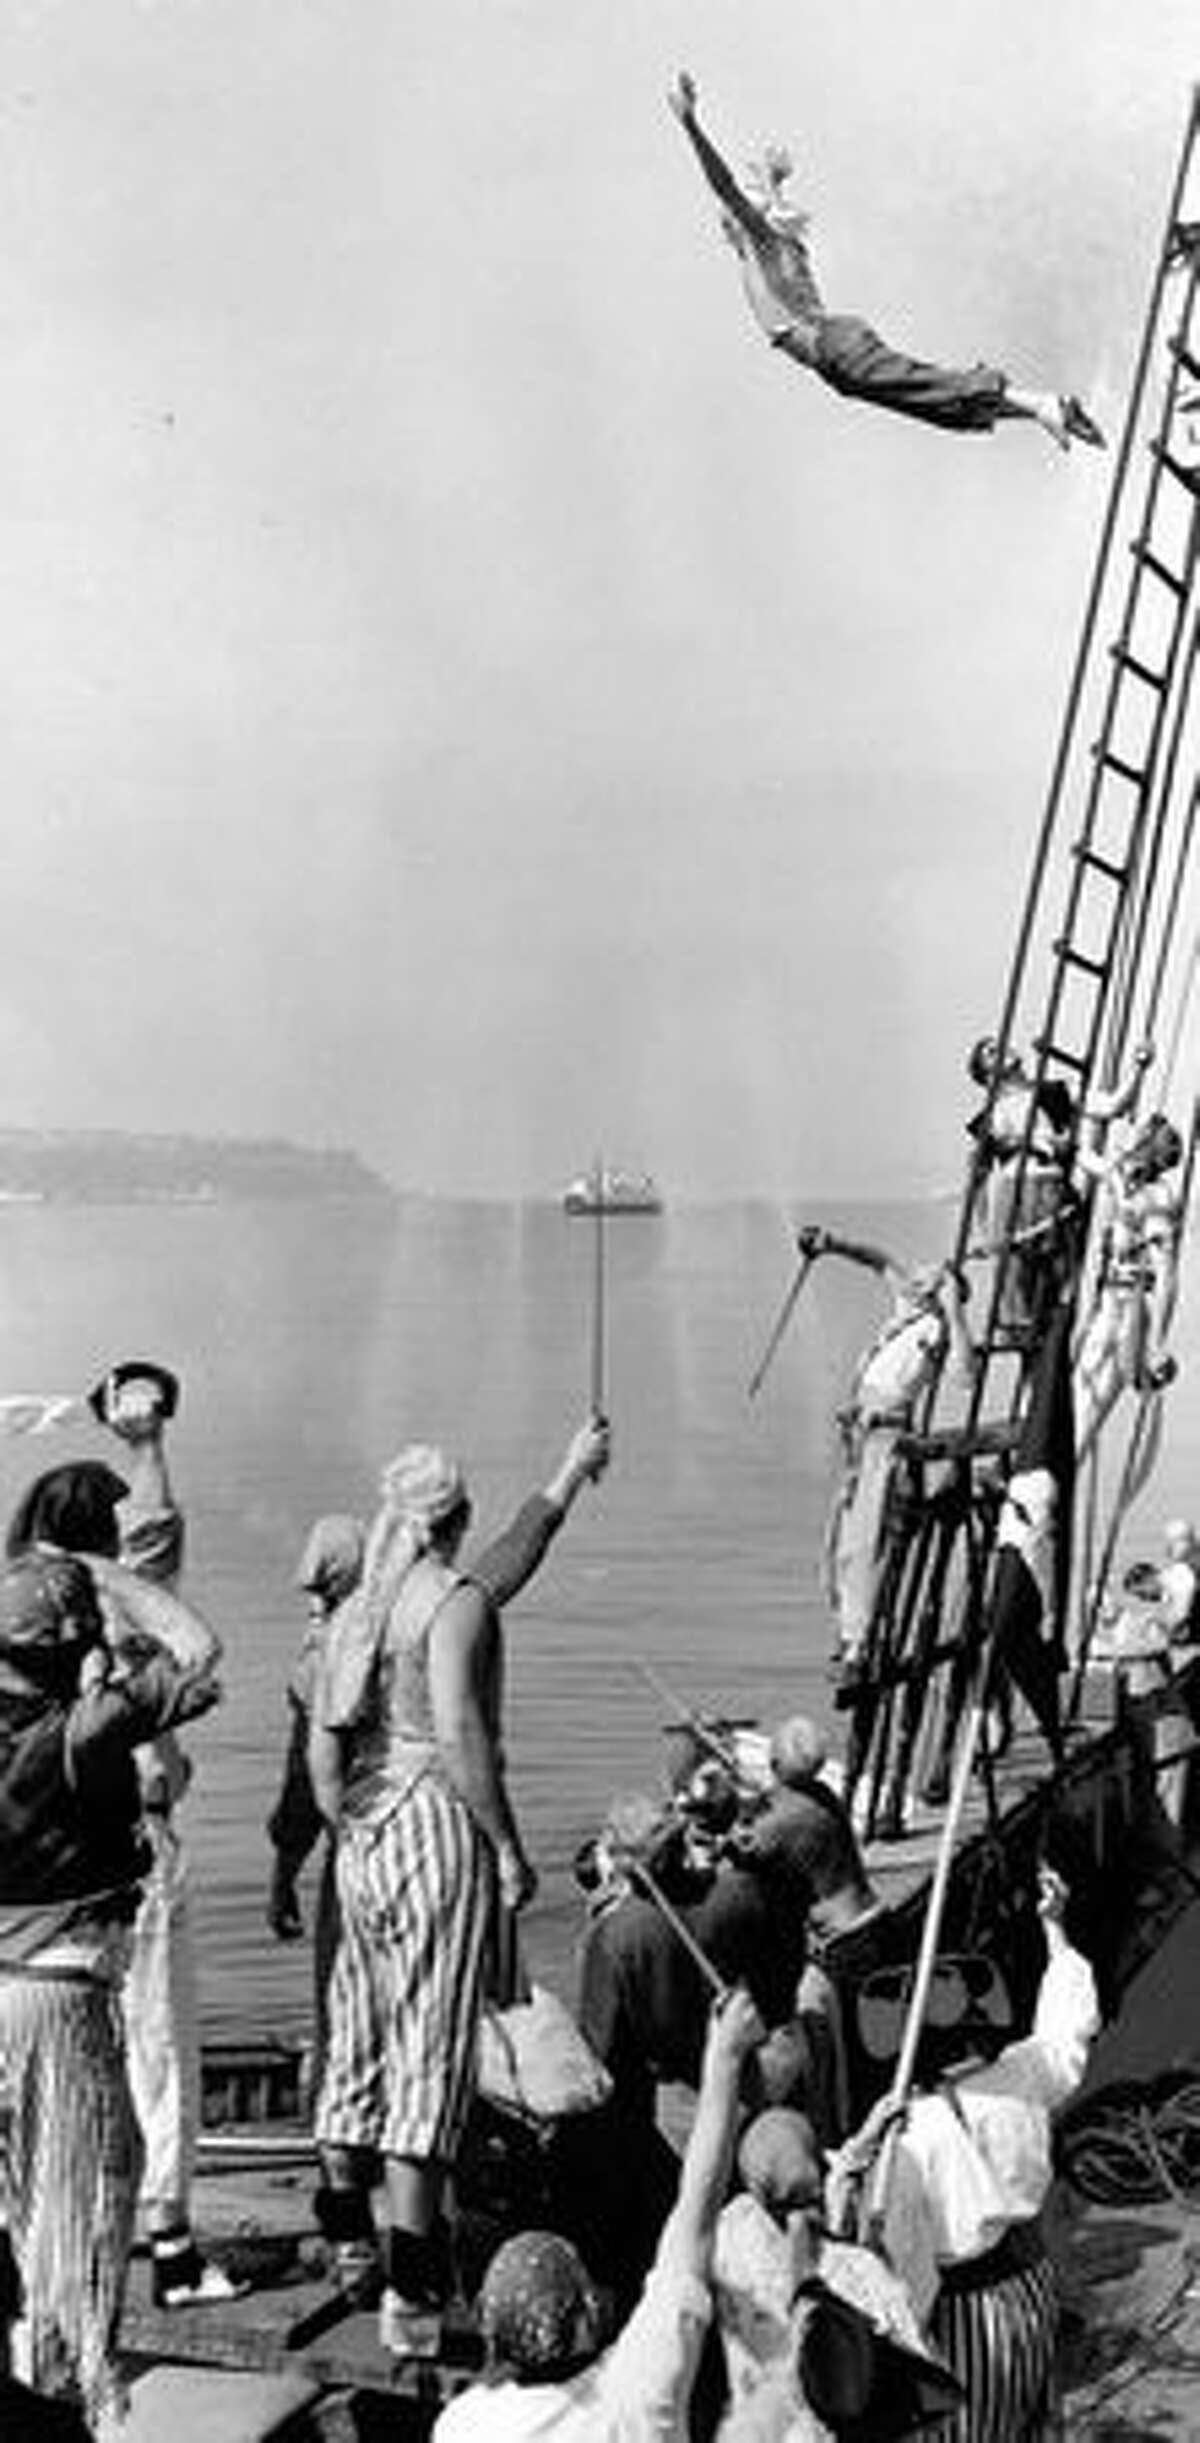 A Seafair pirate dives from the rigging of the three-masted schooner Wawona in Elliott Bay, July 1953.